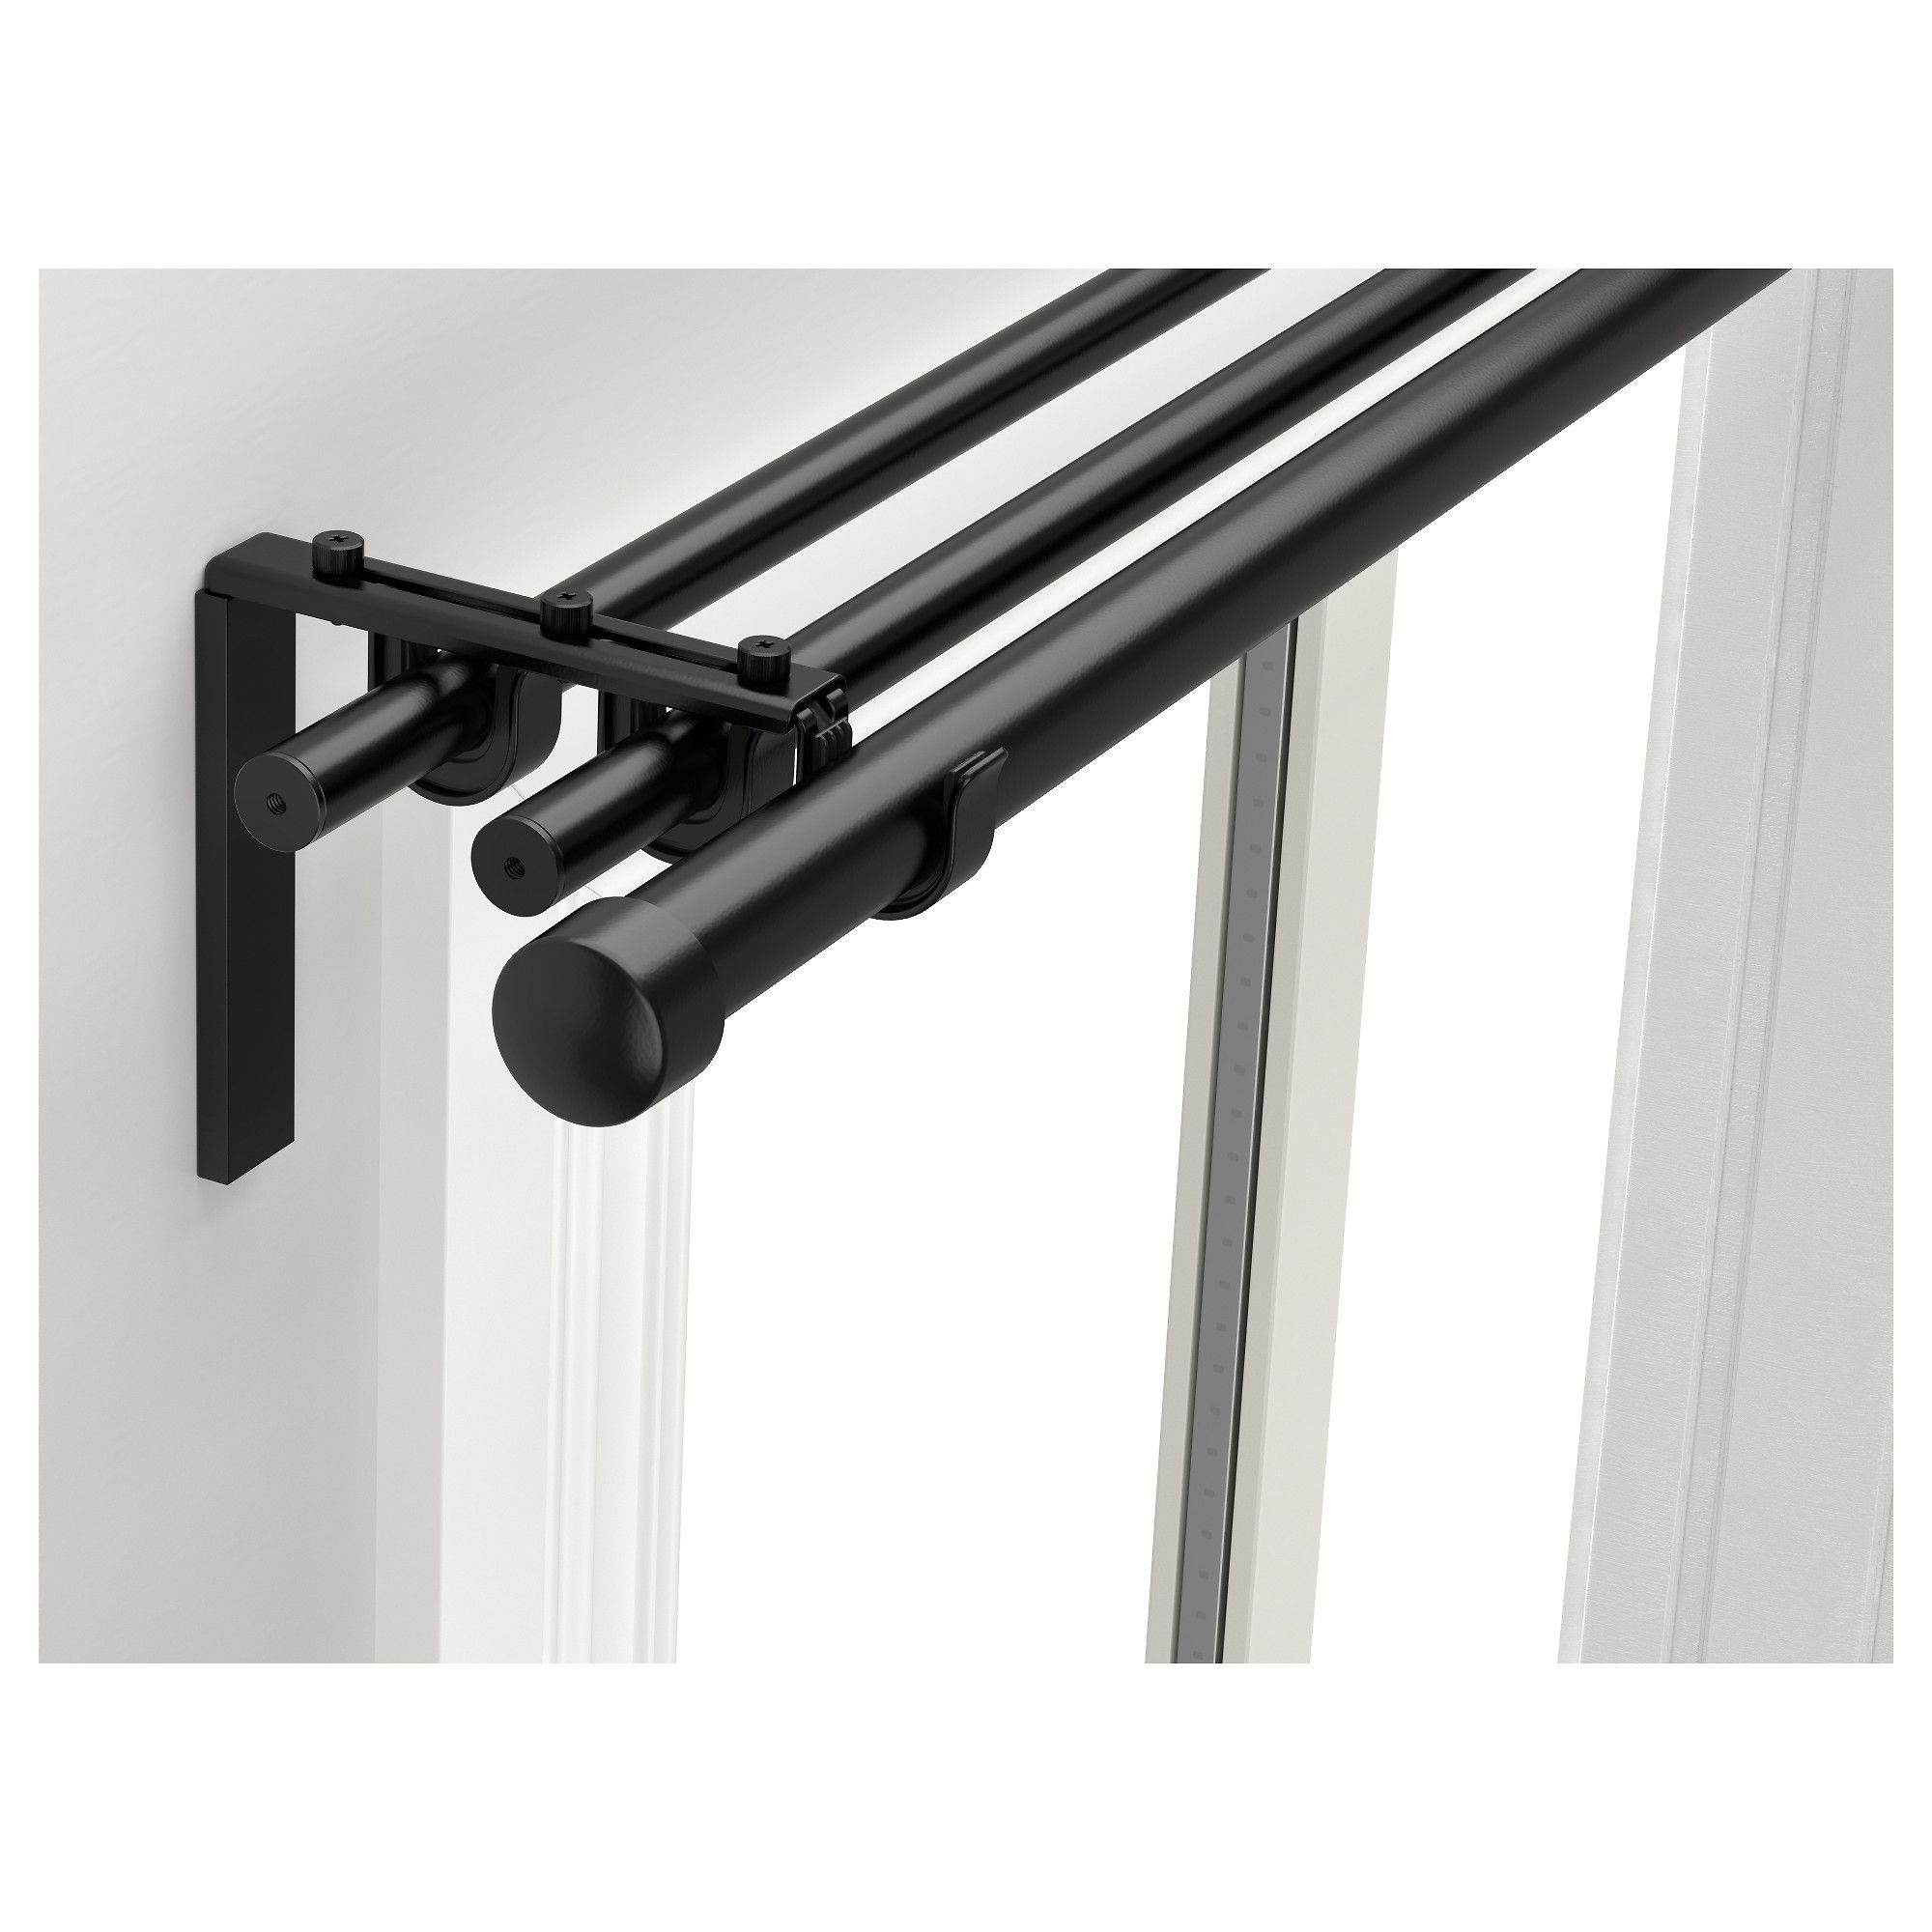 Racka Hugad Triple Curtain Rod Combination Black 82 5 8 151 5